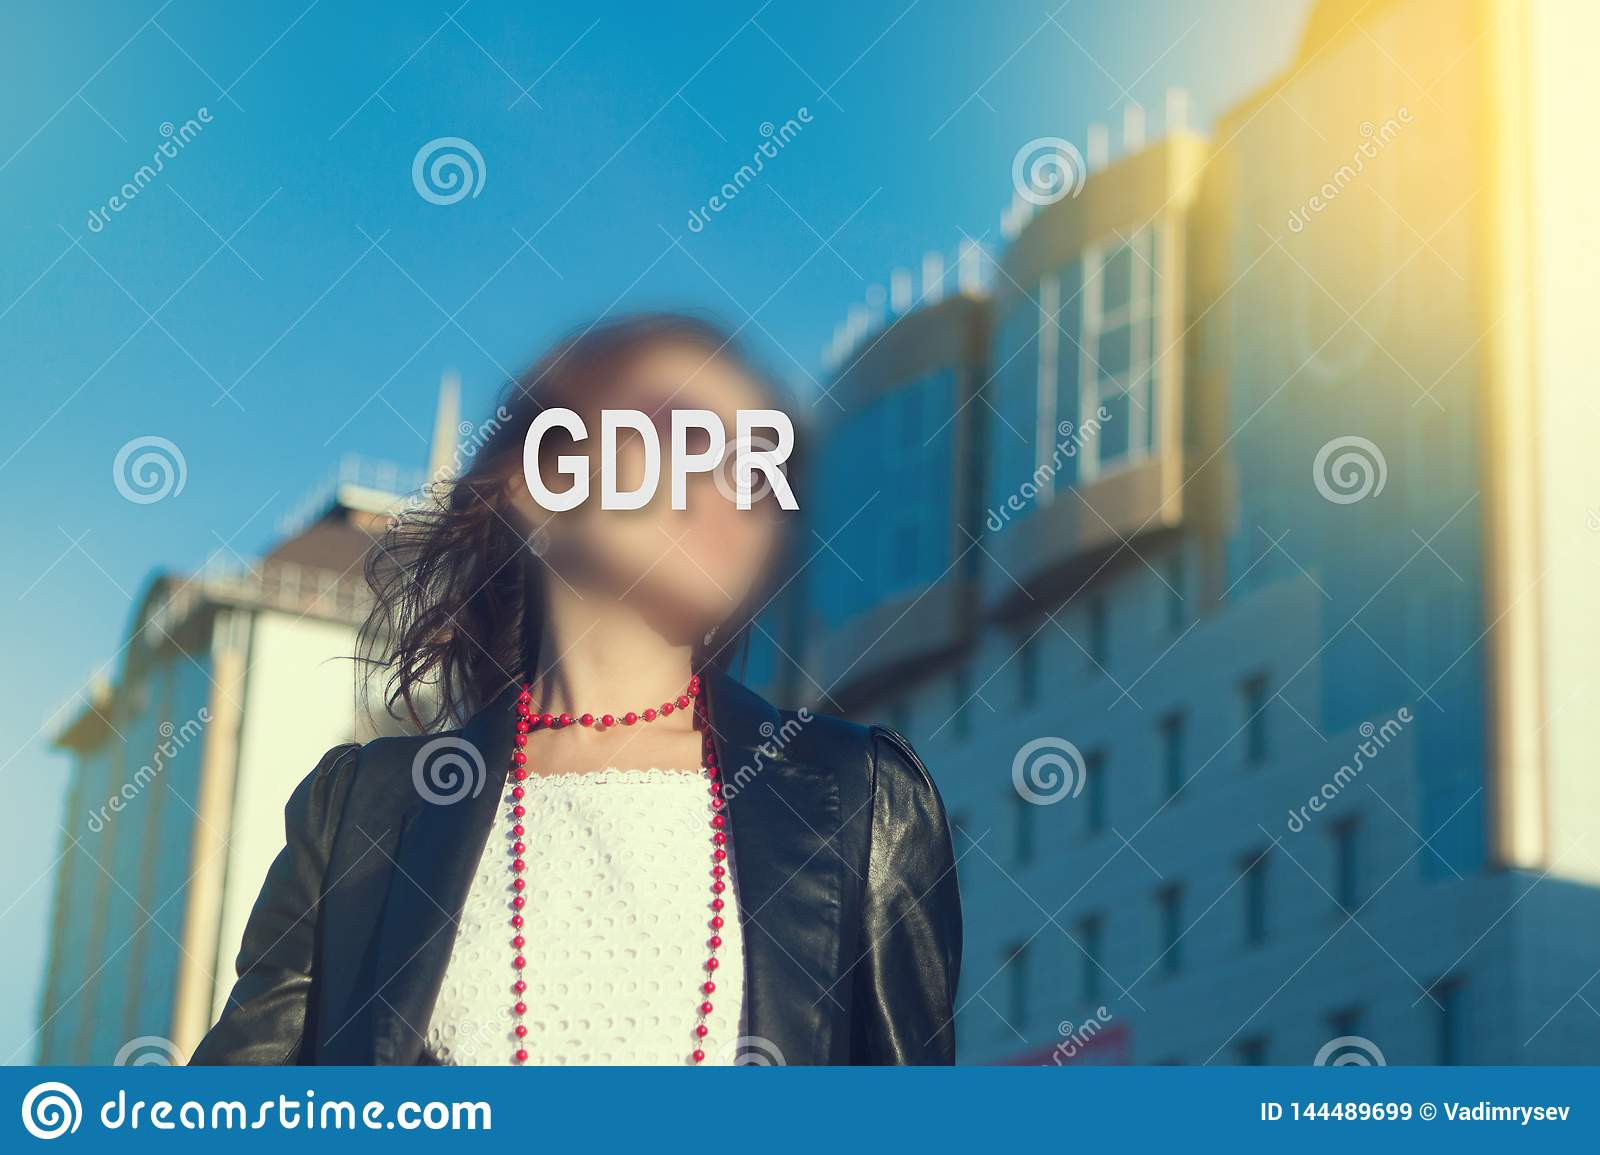 GDPR - woman hiding her face with an inscription GDPR.